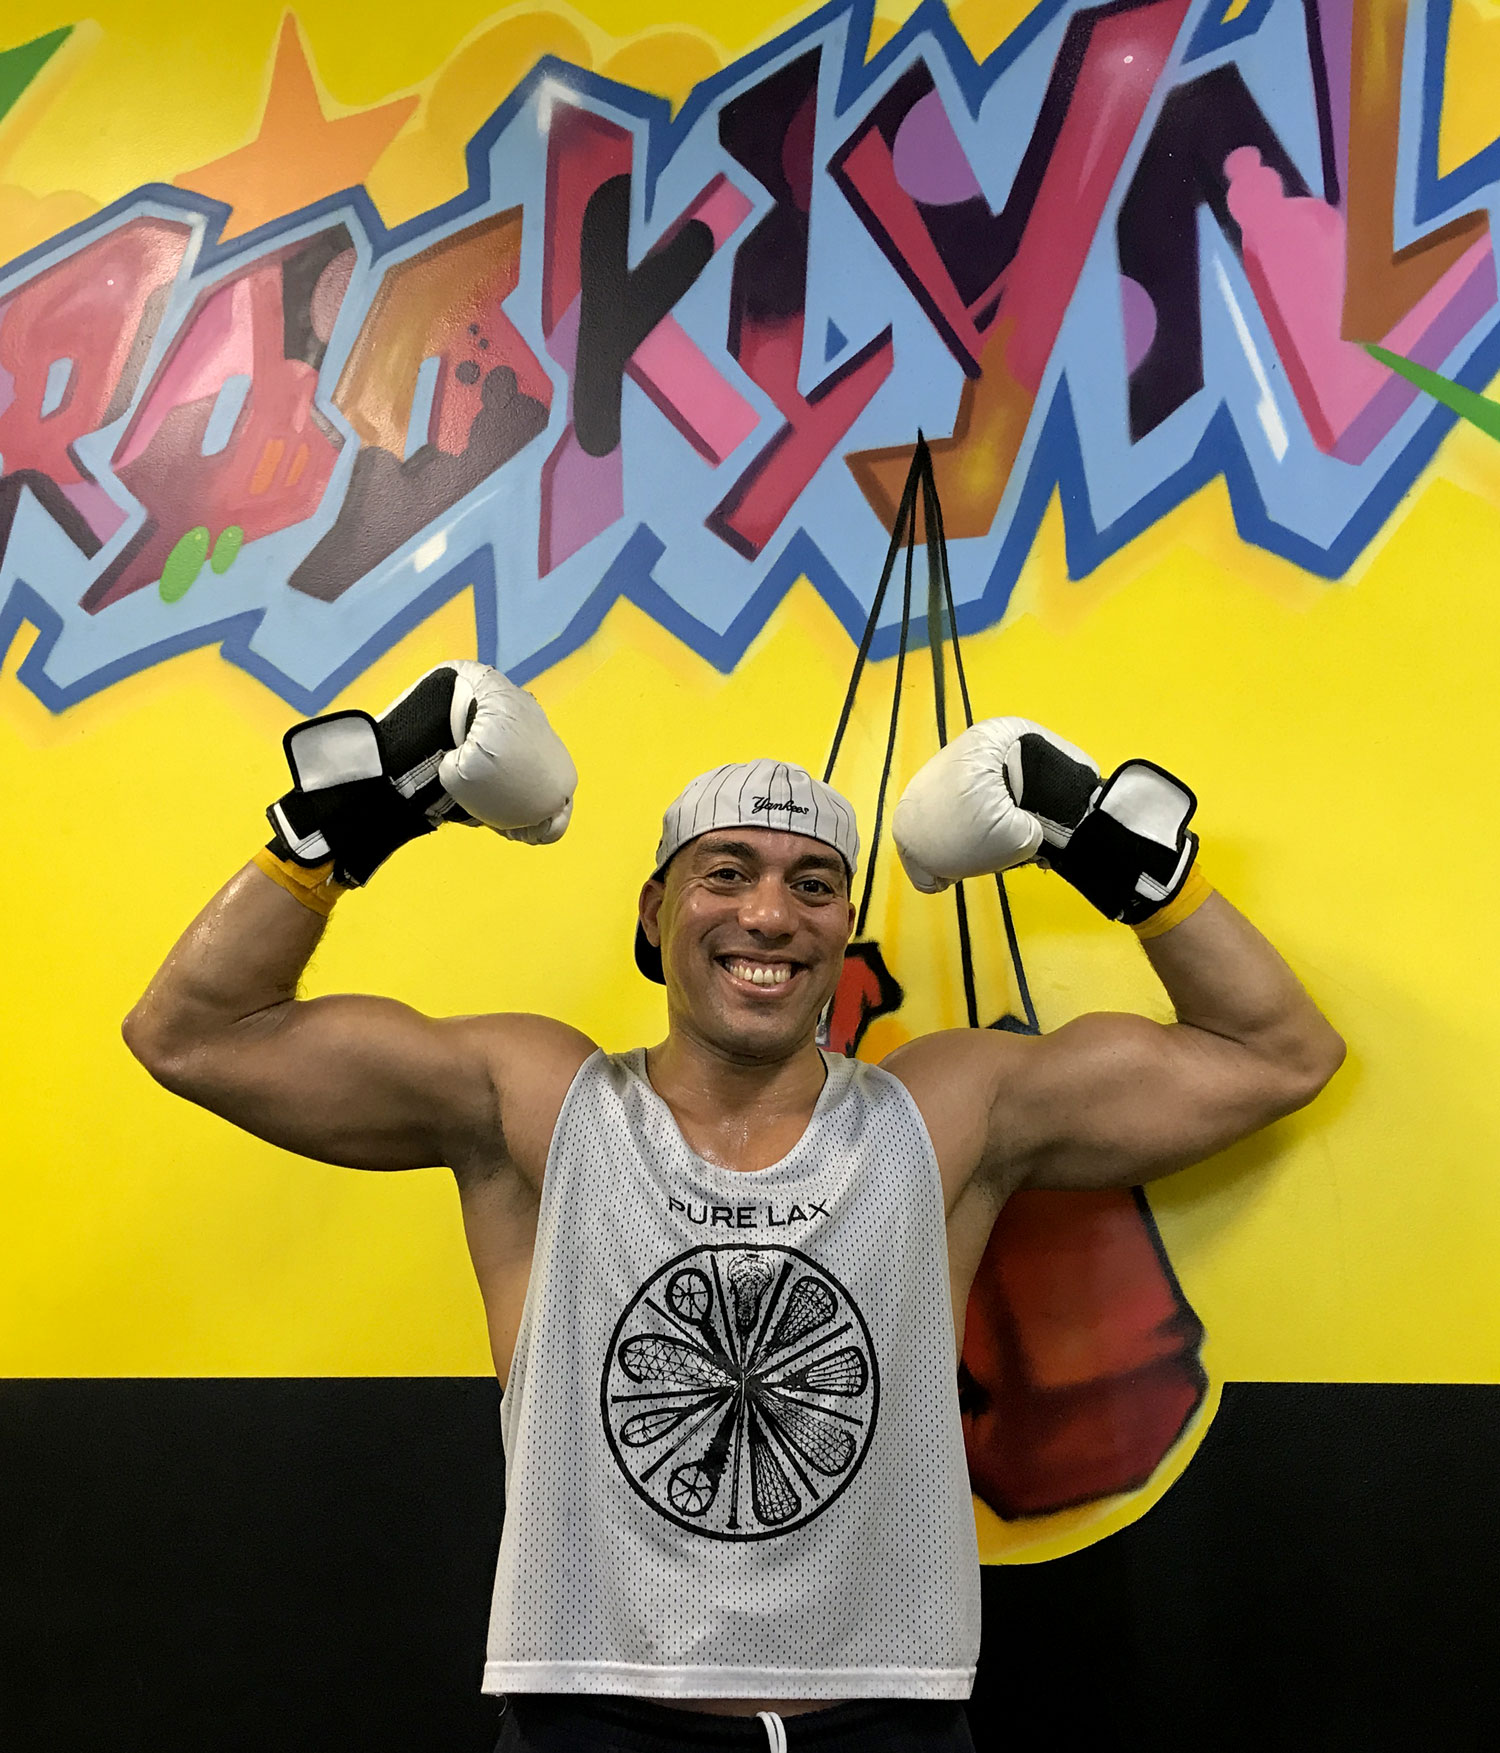 Start the new year off with a fitness plan! - Start your new year off right with personal trainer Gabriel Portuondo. Gabe is offering three fitness/weight-training sessions beginning in January.Value: $600Starting Bid: $200